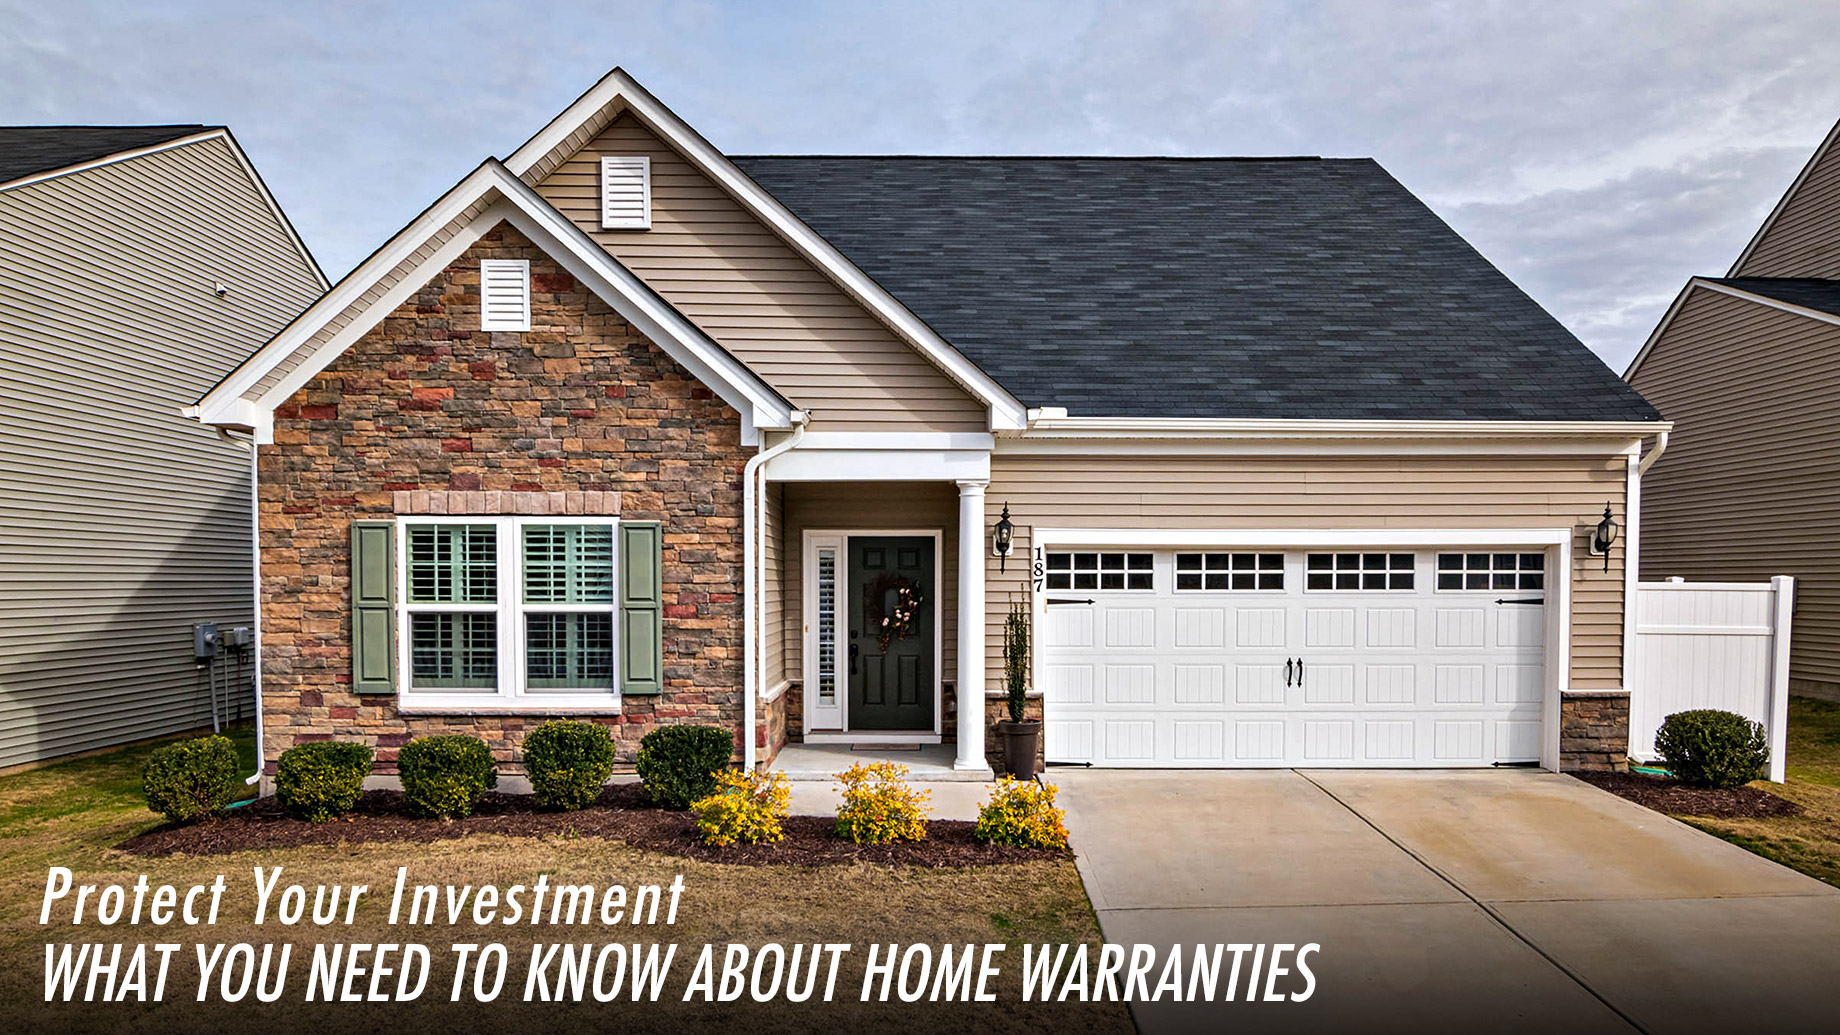 Protect Your Investment - What You Need To Know About Home Warranties